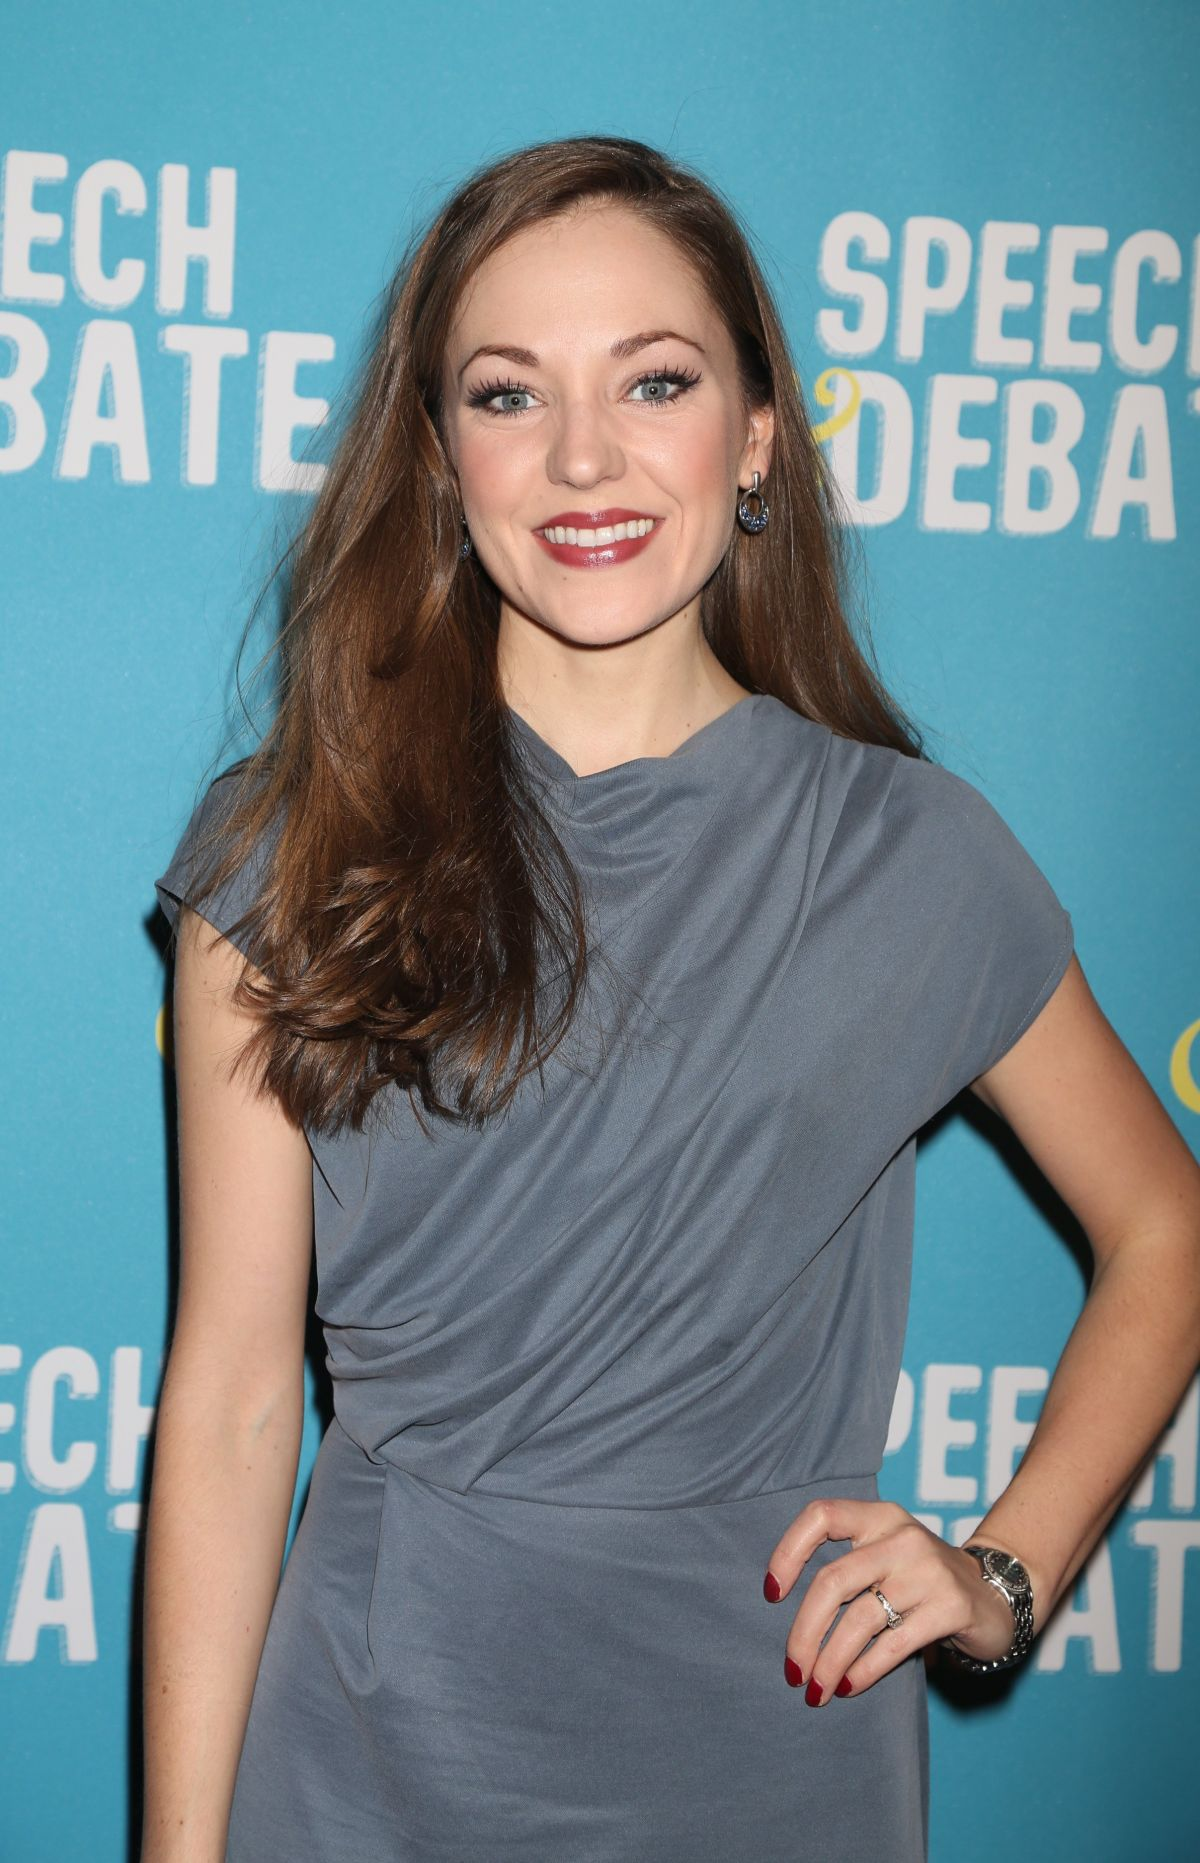 LAURA OSNES at Speech & Debate Premiere in New York 04/02/2017